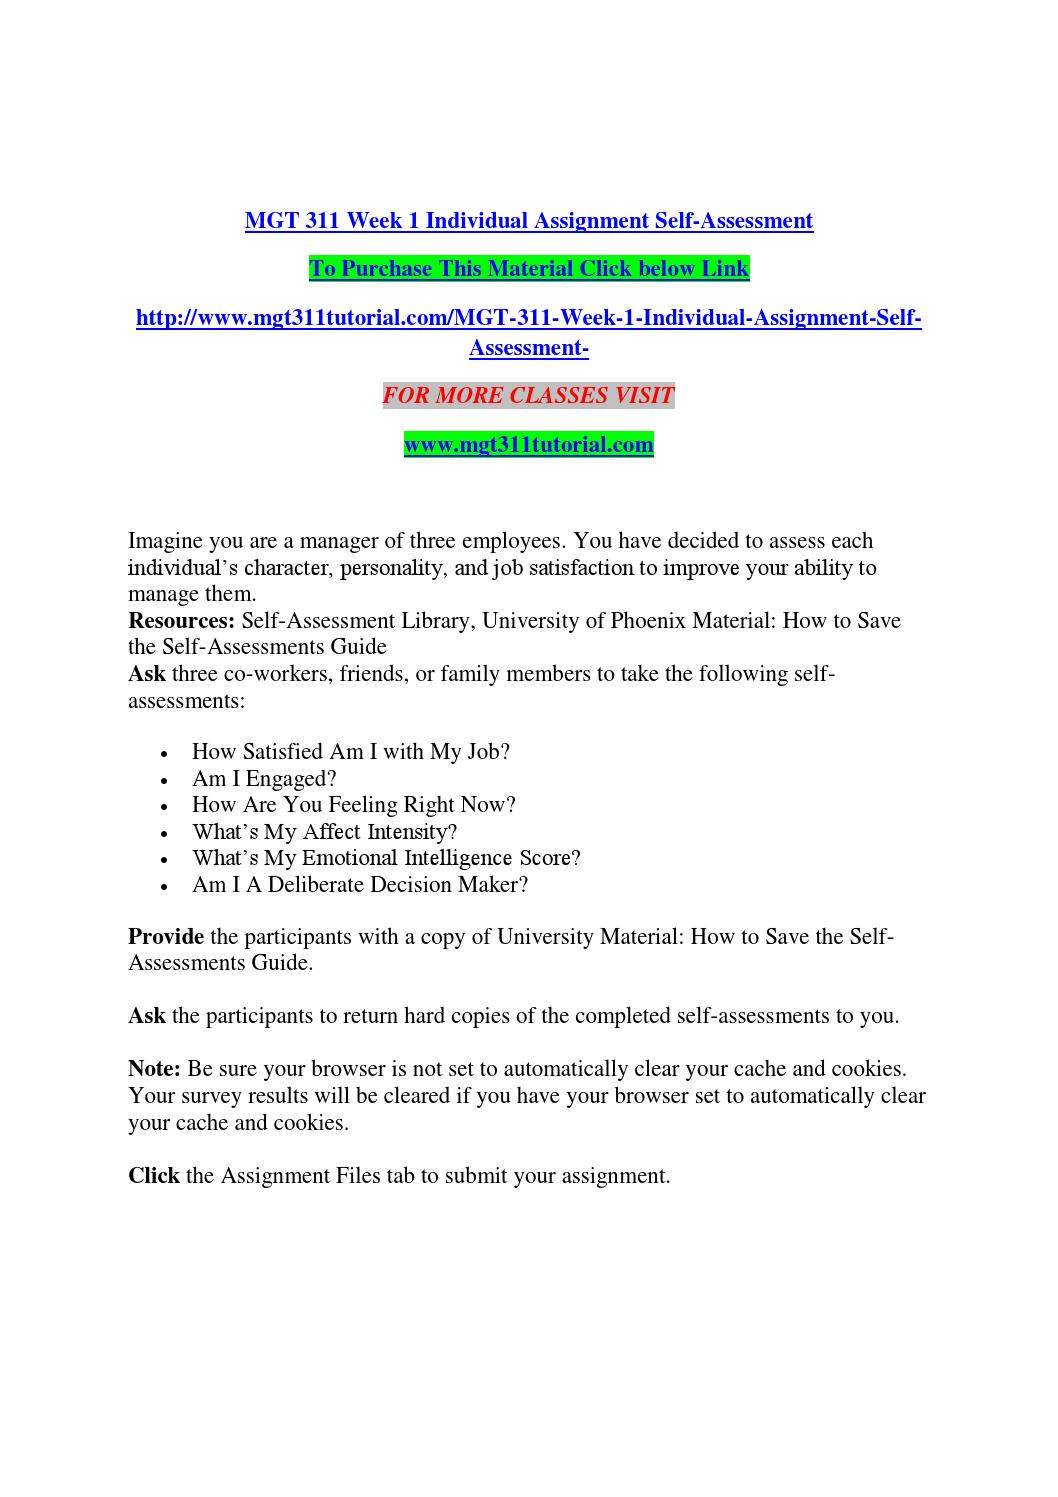 Mgt 311 Week 1 Individual Assignment Self Assessment By Alpanlebayl - Issuu